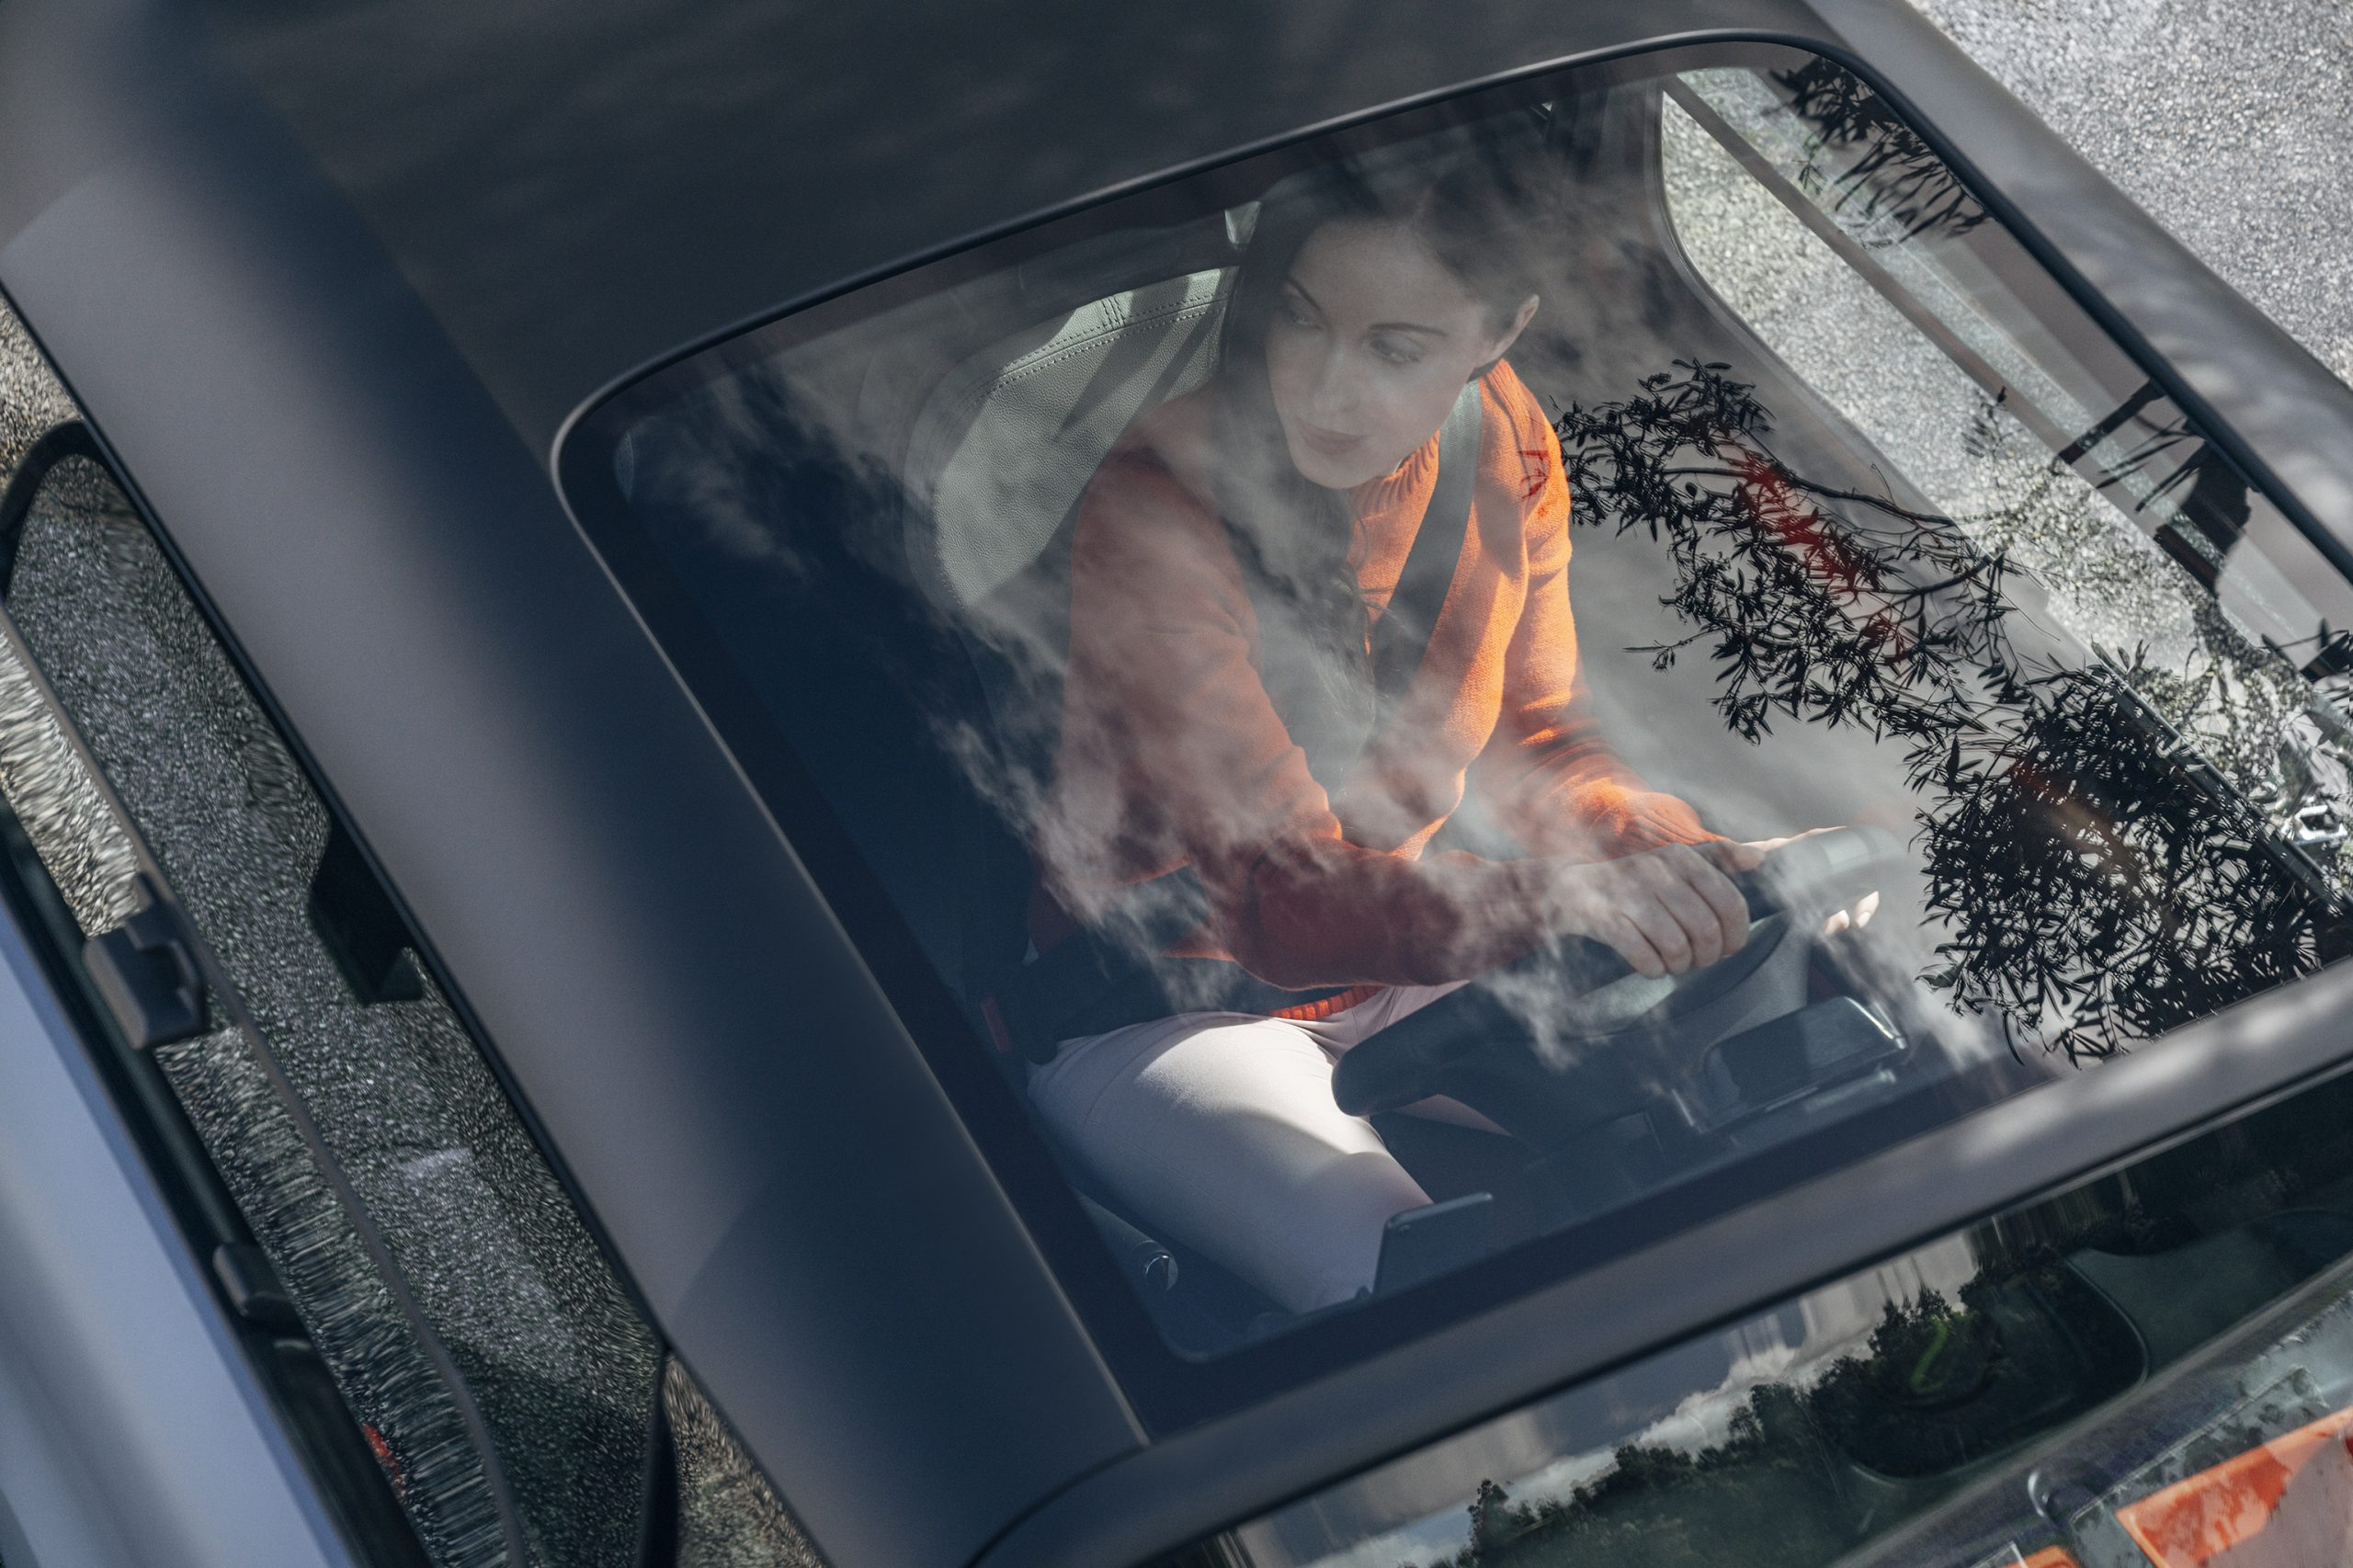 panoramic glass roof allows for greater visibility